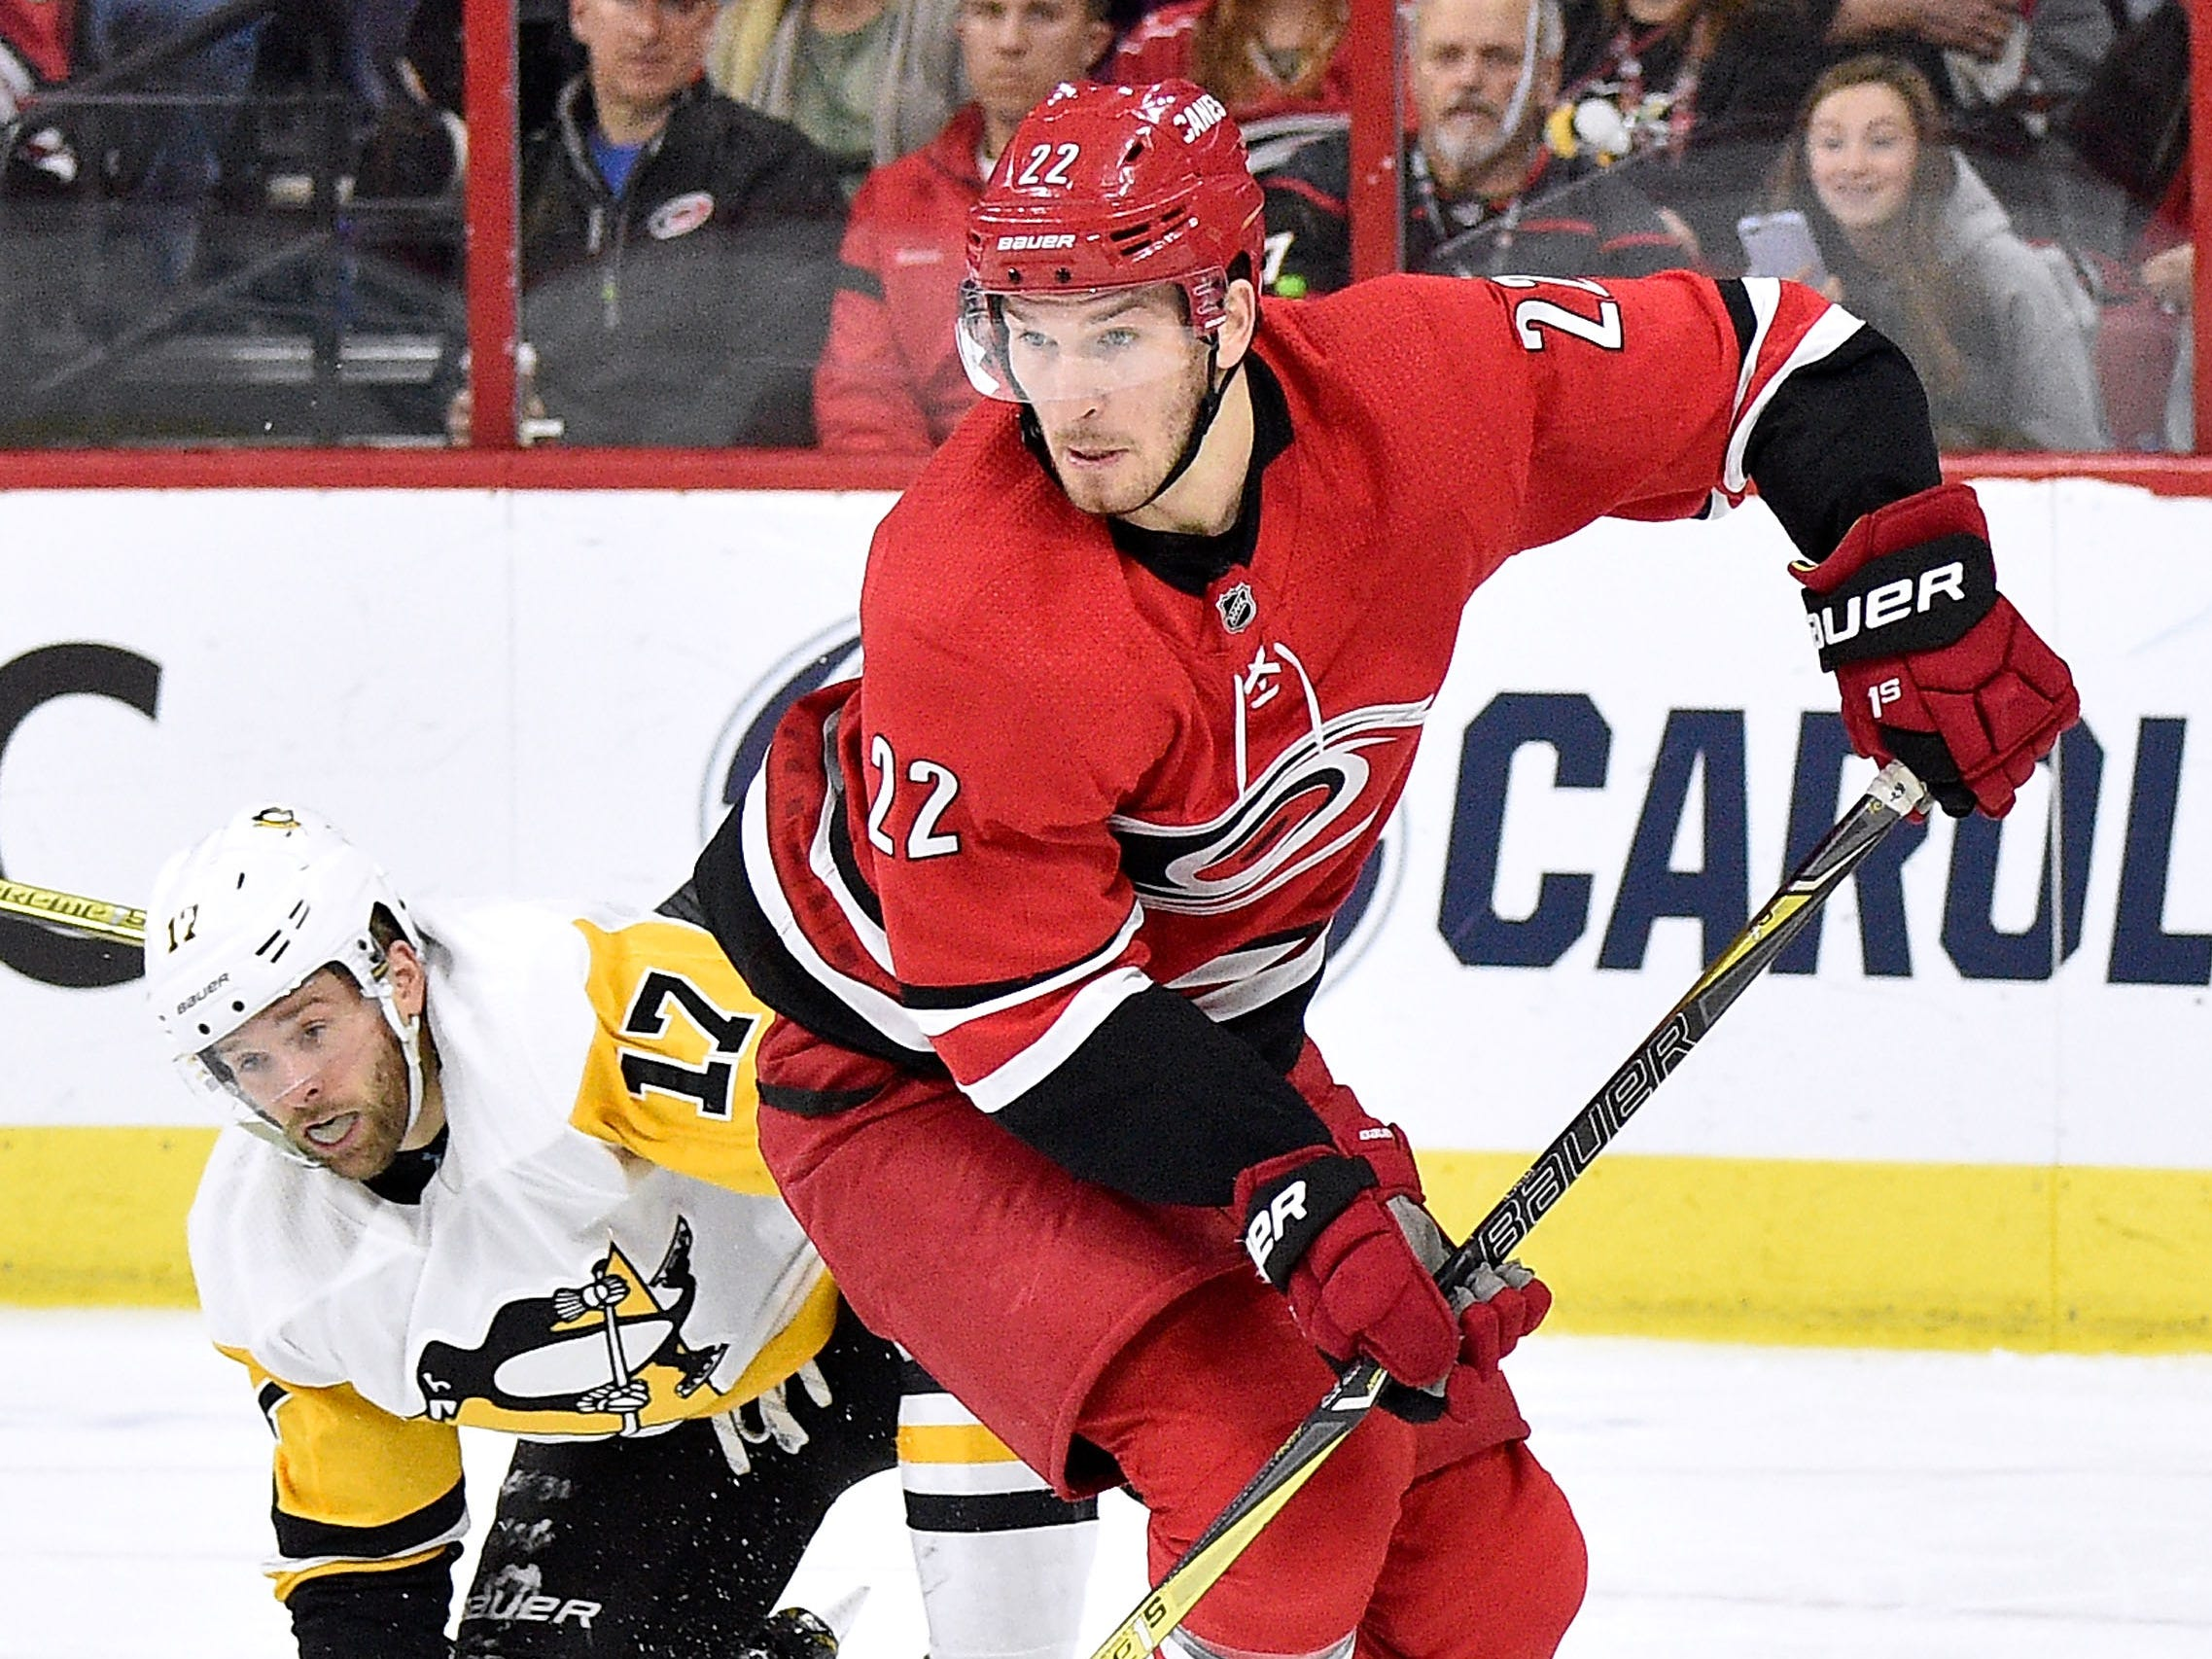 12. Brett Pesce, D, Carolina:  With a roster overloaded with fine defensemen, the Hurricanes will get calls. But Pesce wouldn't come cheaply; the Hurricanes likely will want a young forward in return.